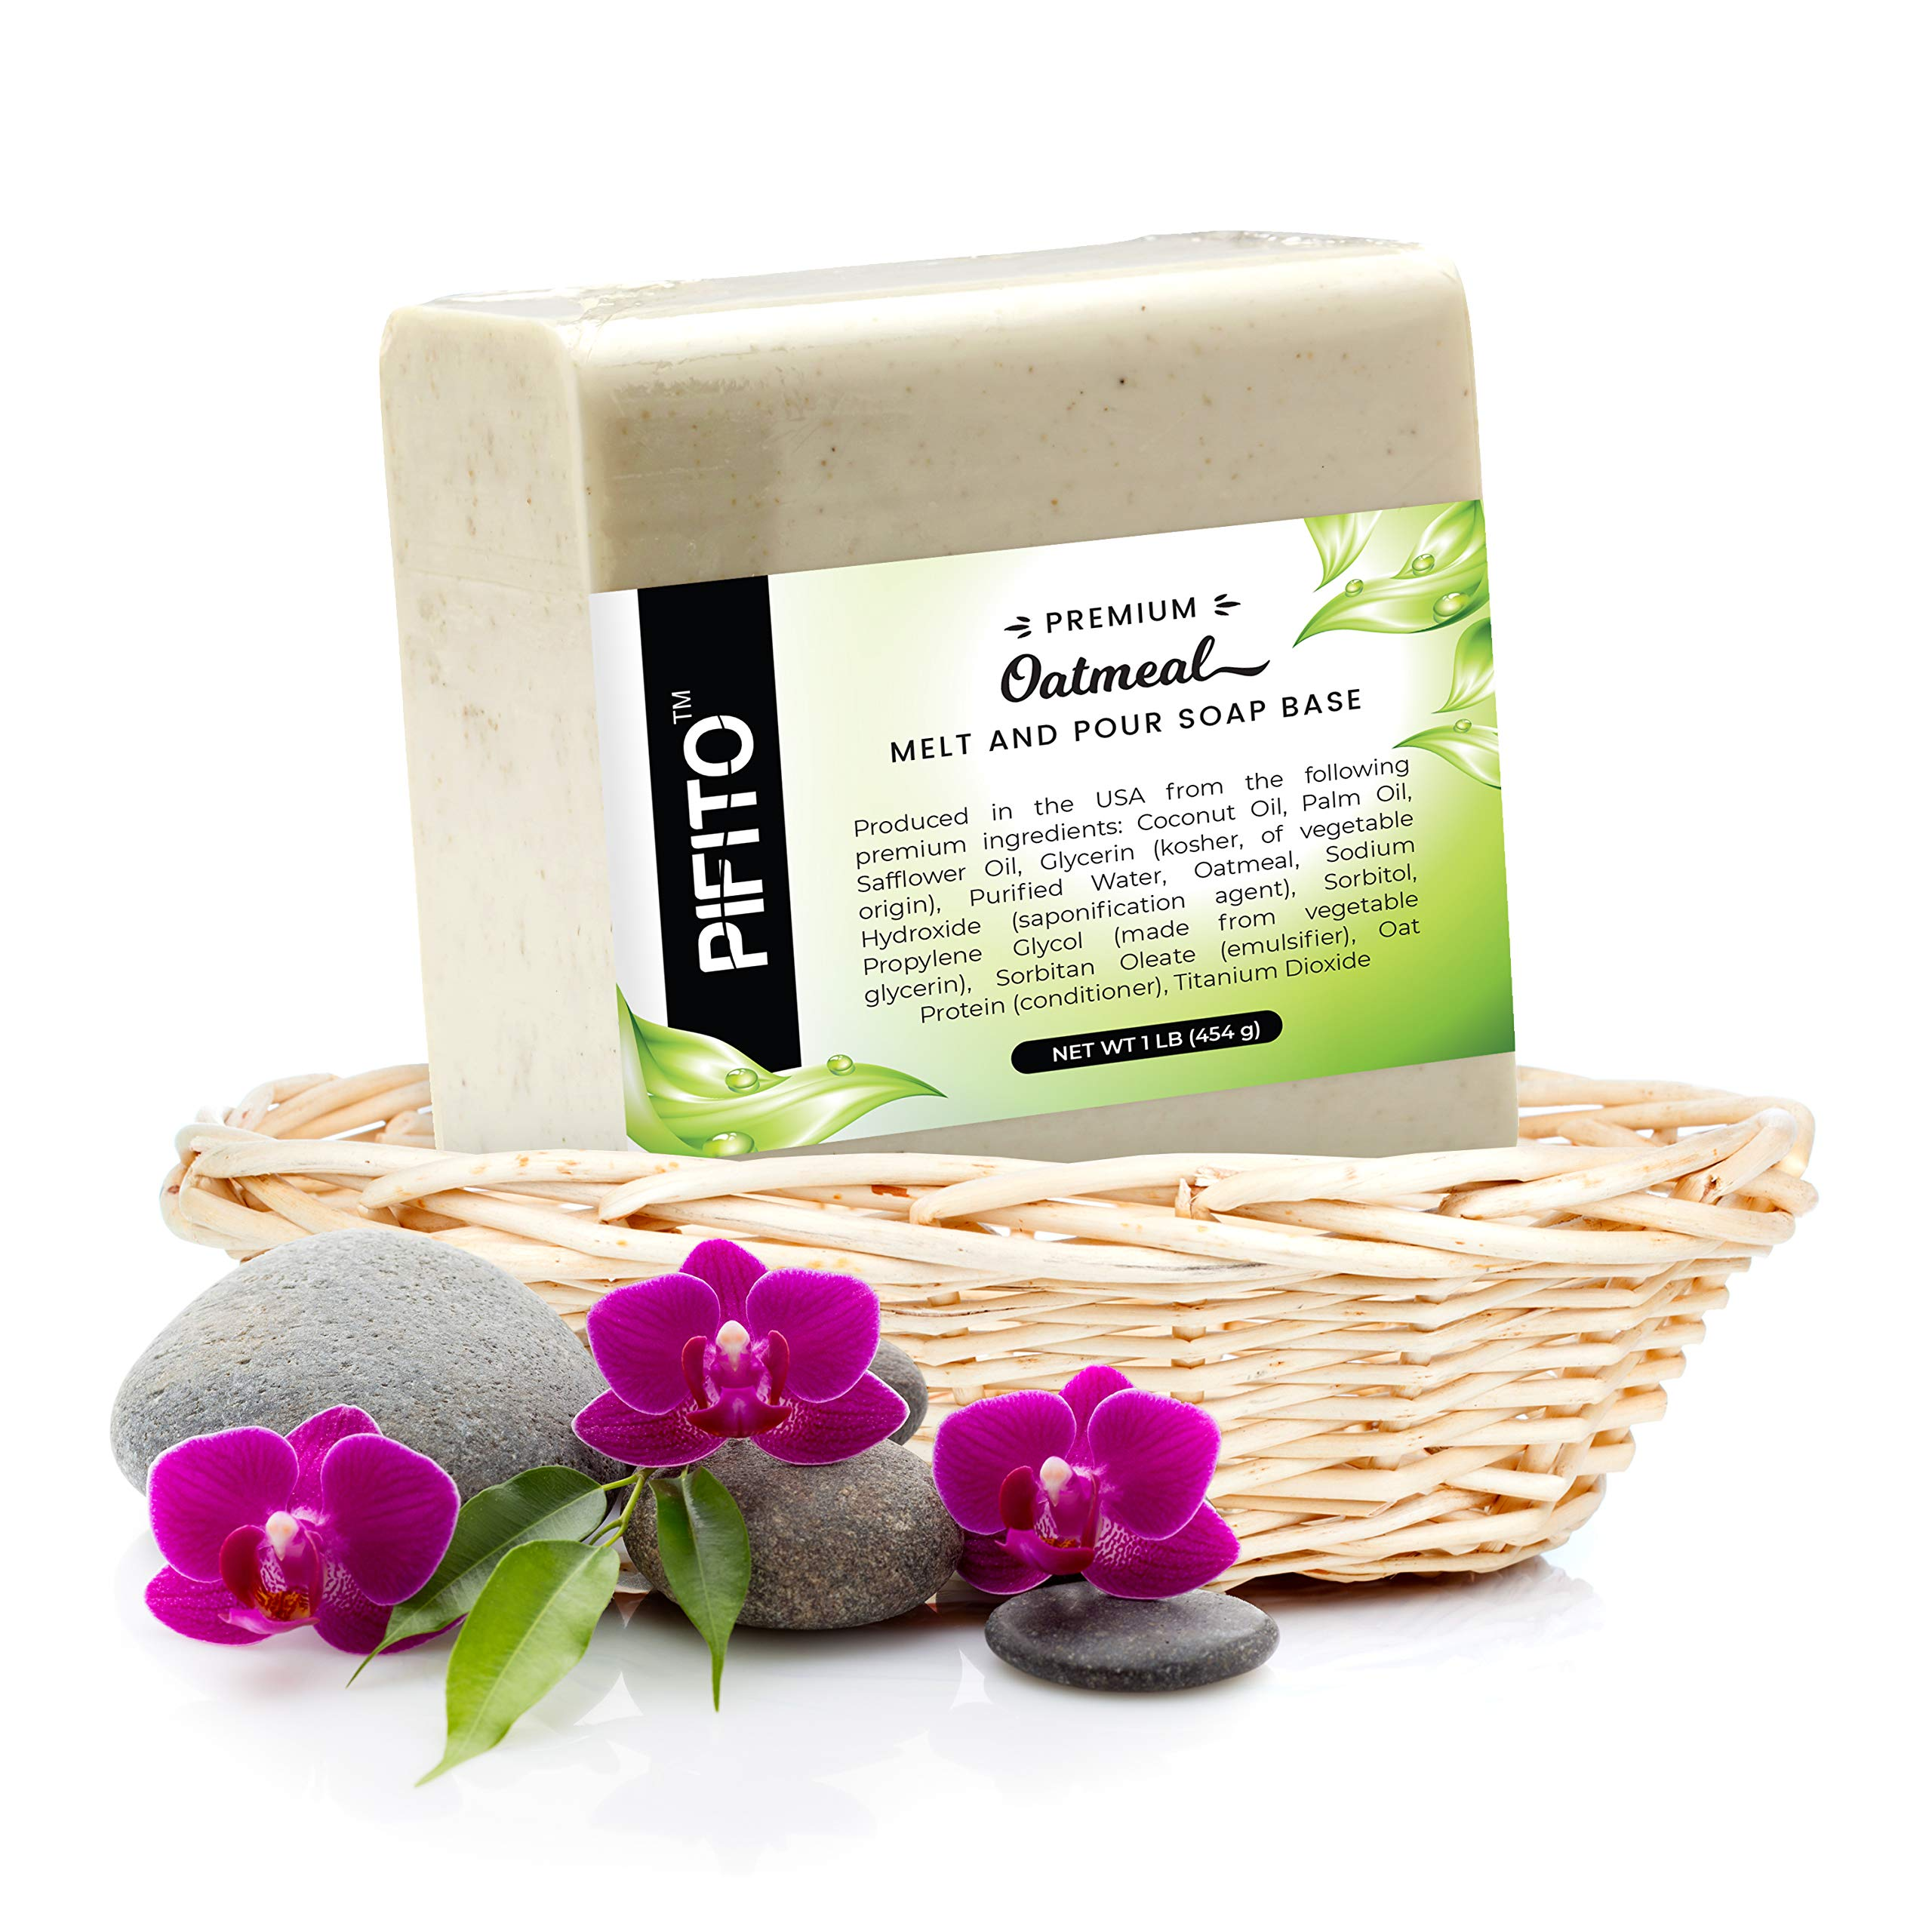 Pifito Premium Oatmeal Melt and Pour Soap Base (5 lb) - Natural Vegetable Glycerin Soap Base - Excellent Hand Soap Base Making Supplies